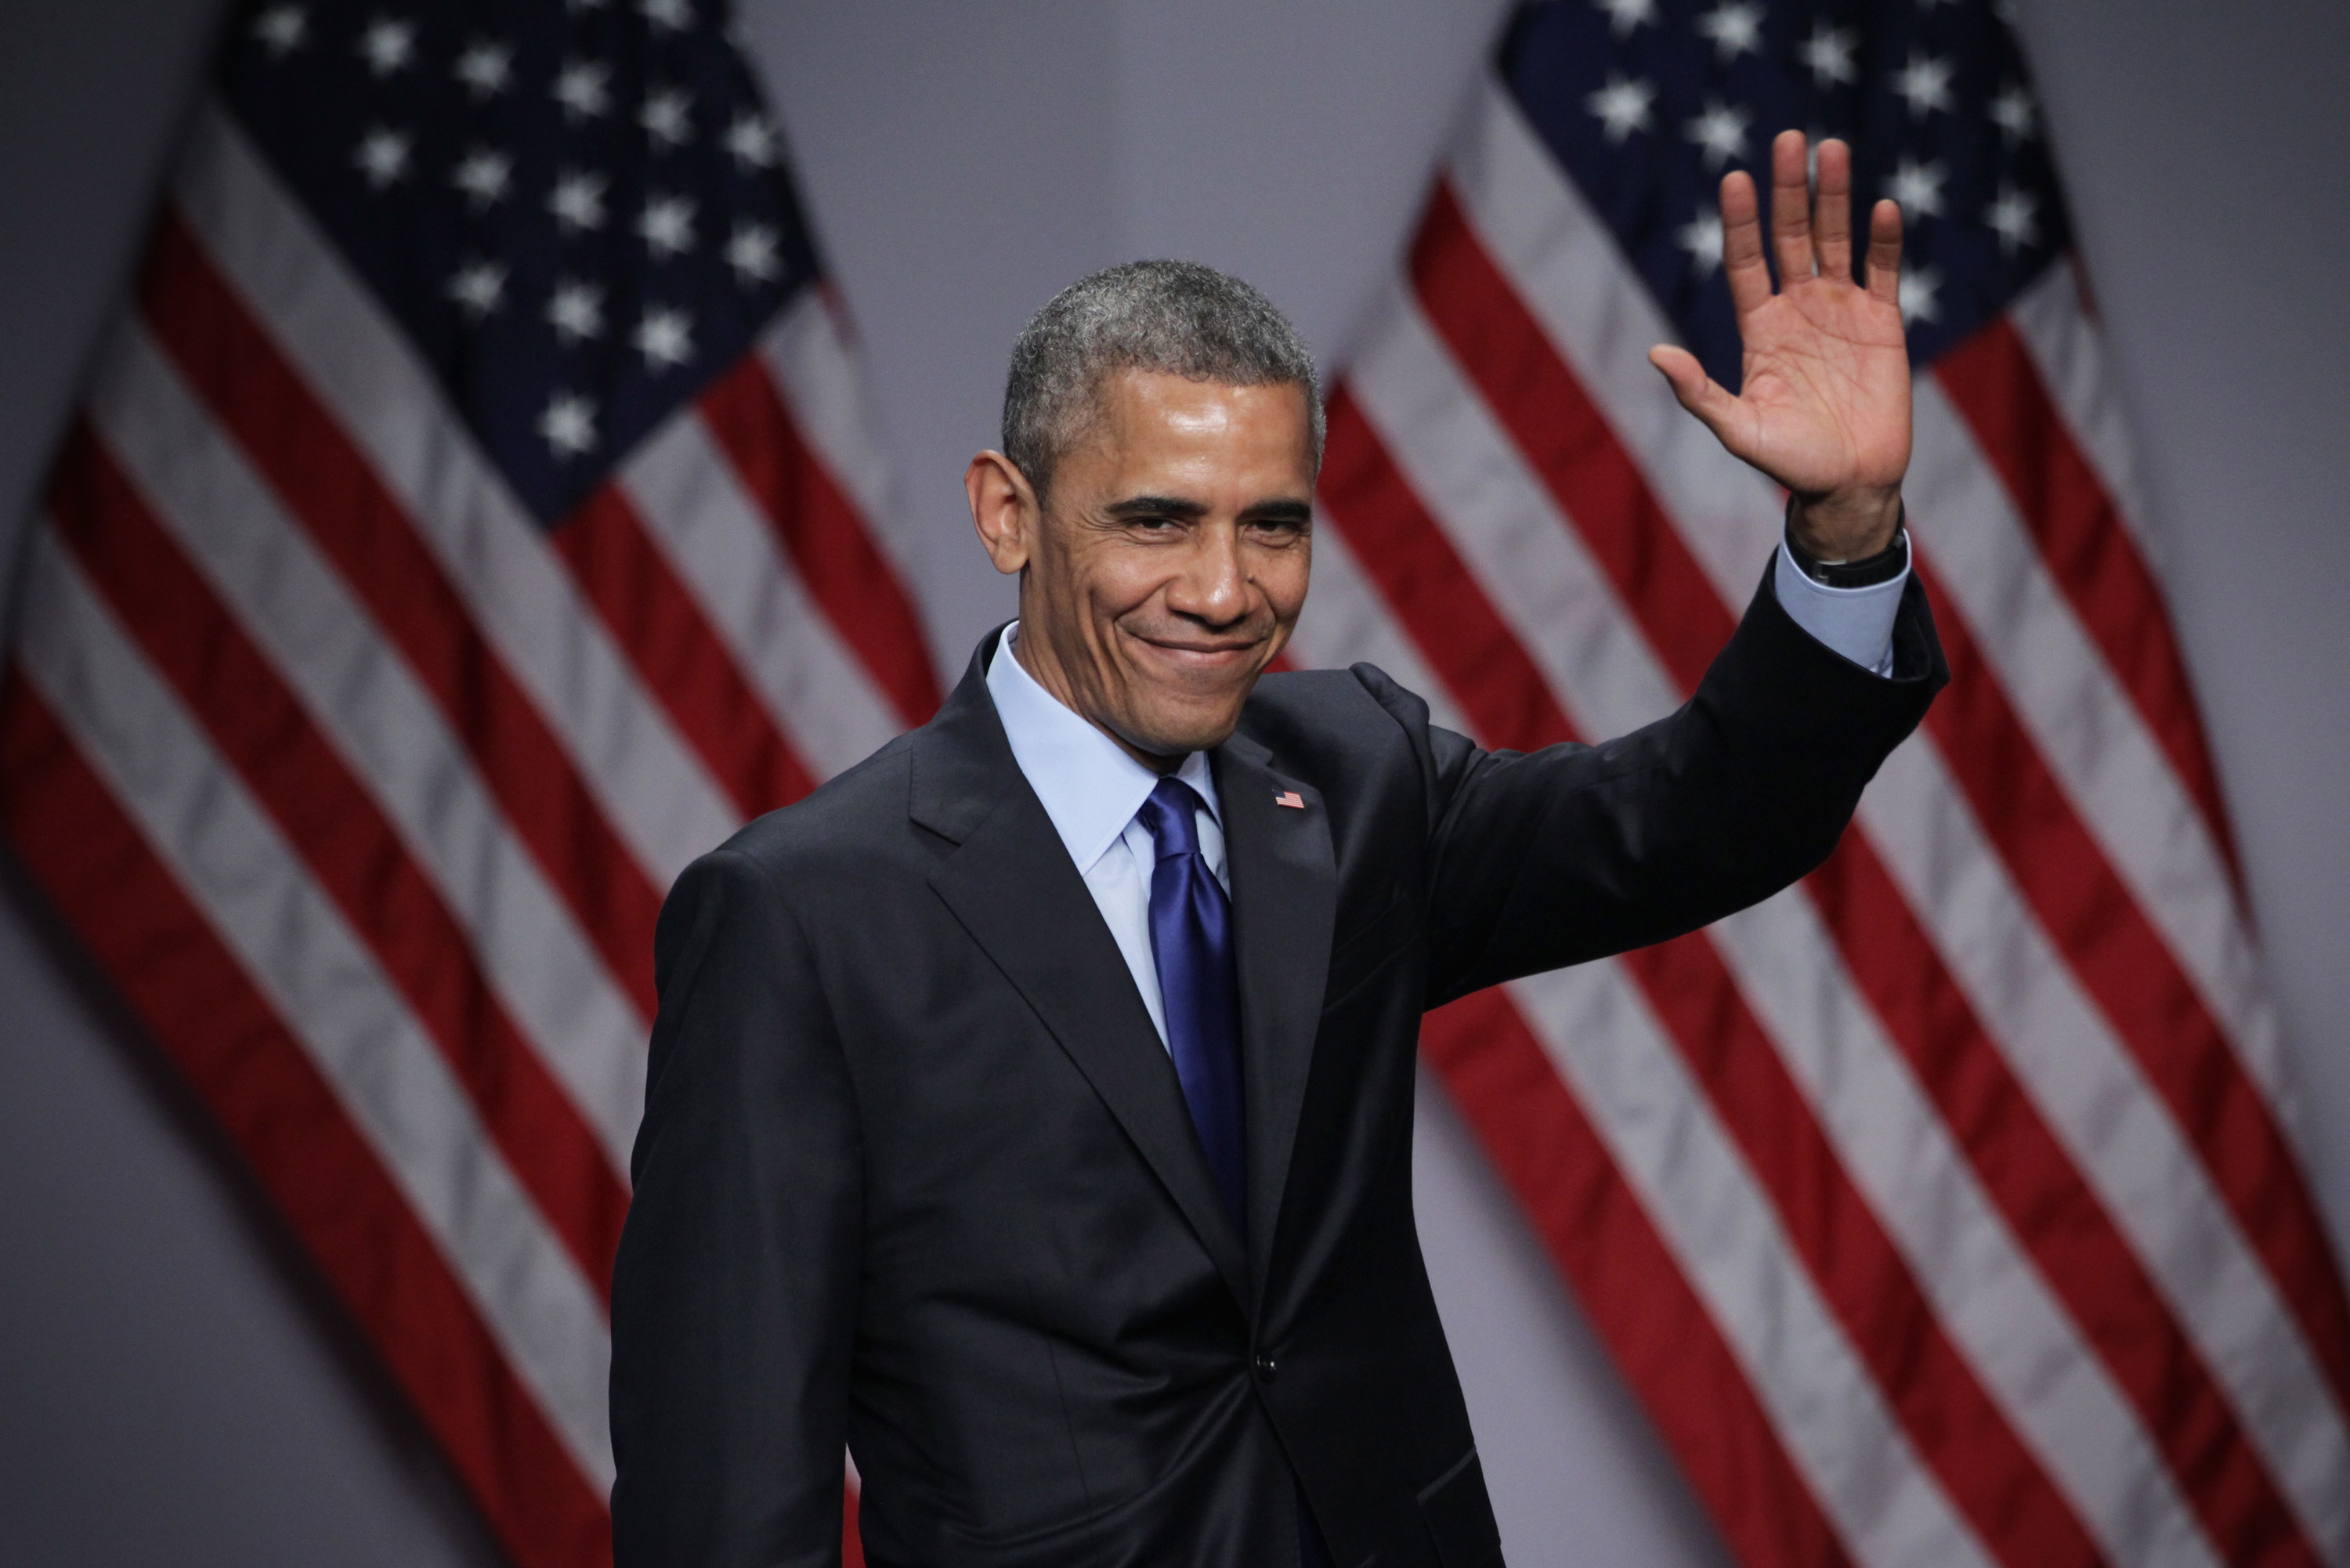 Obama waves at a summit in 2015